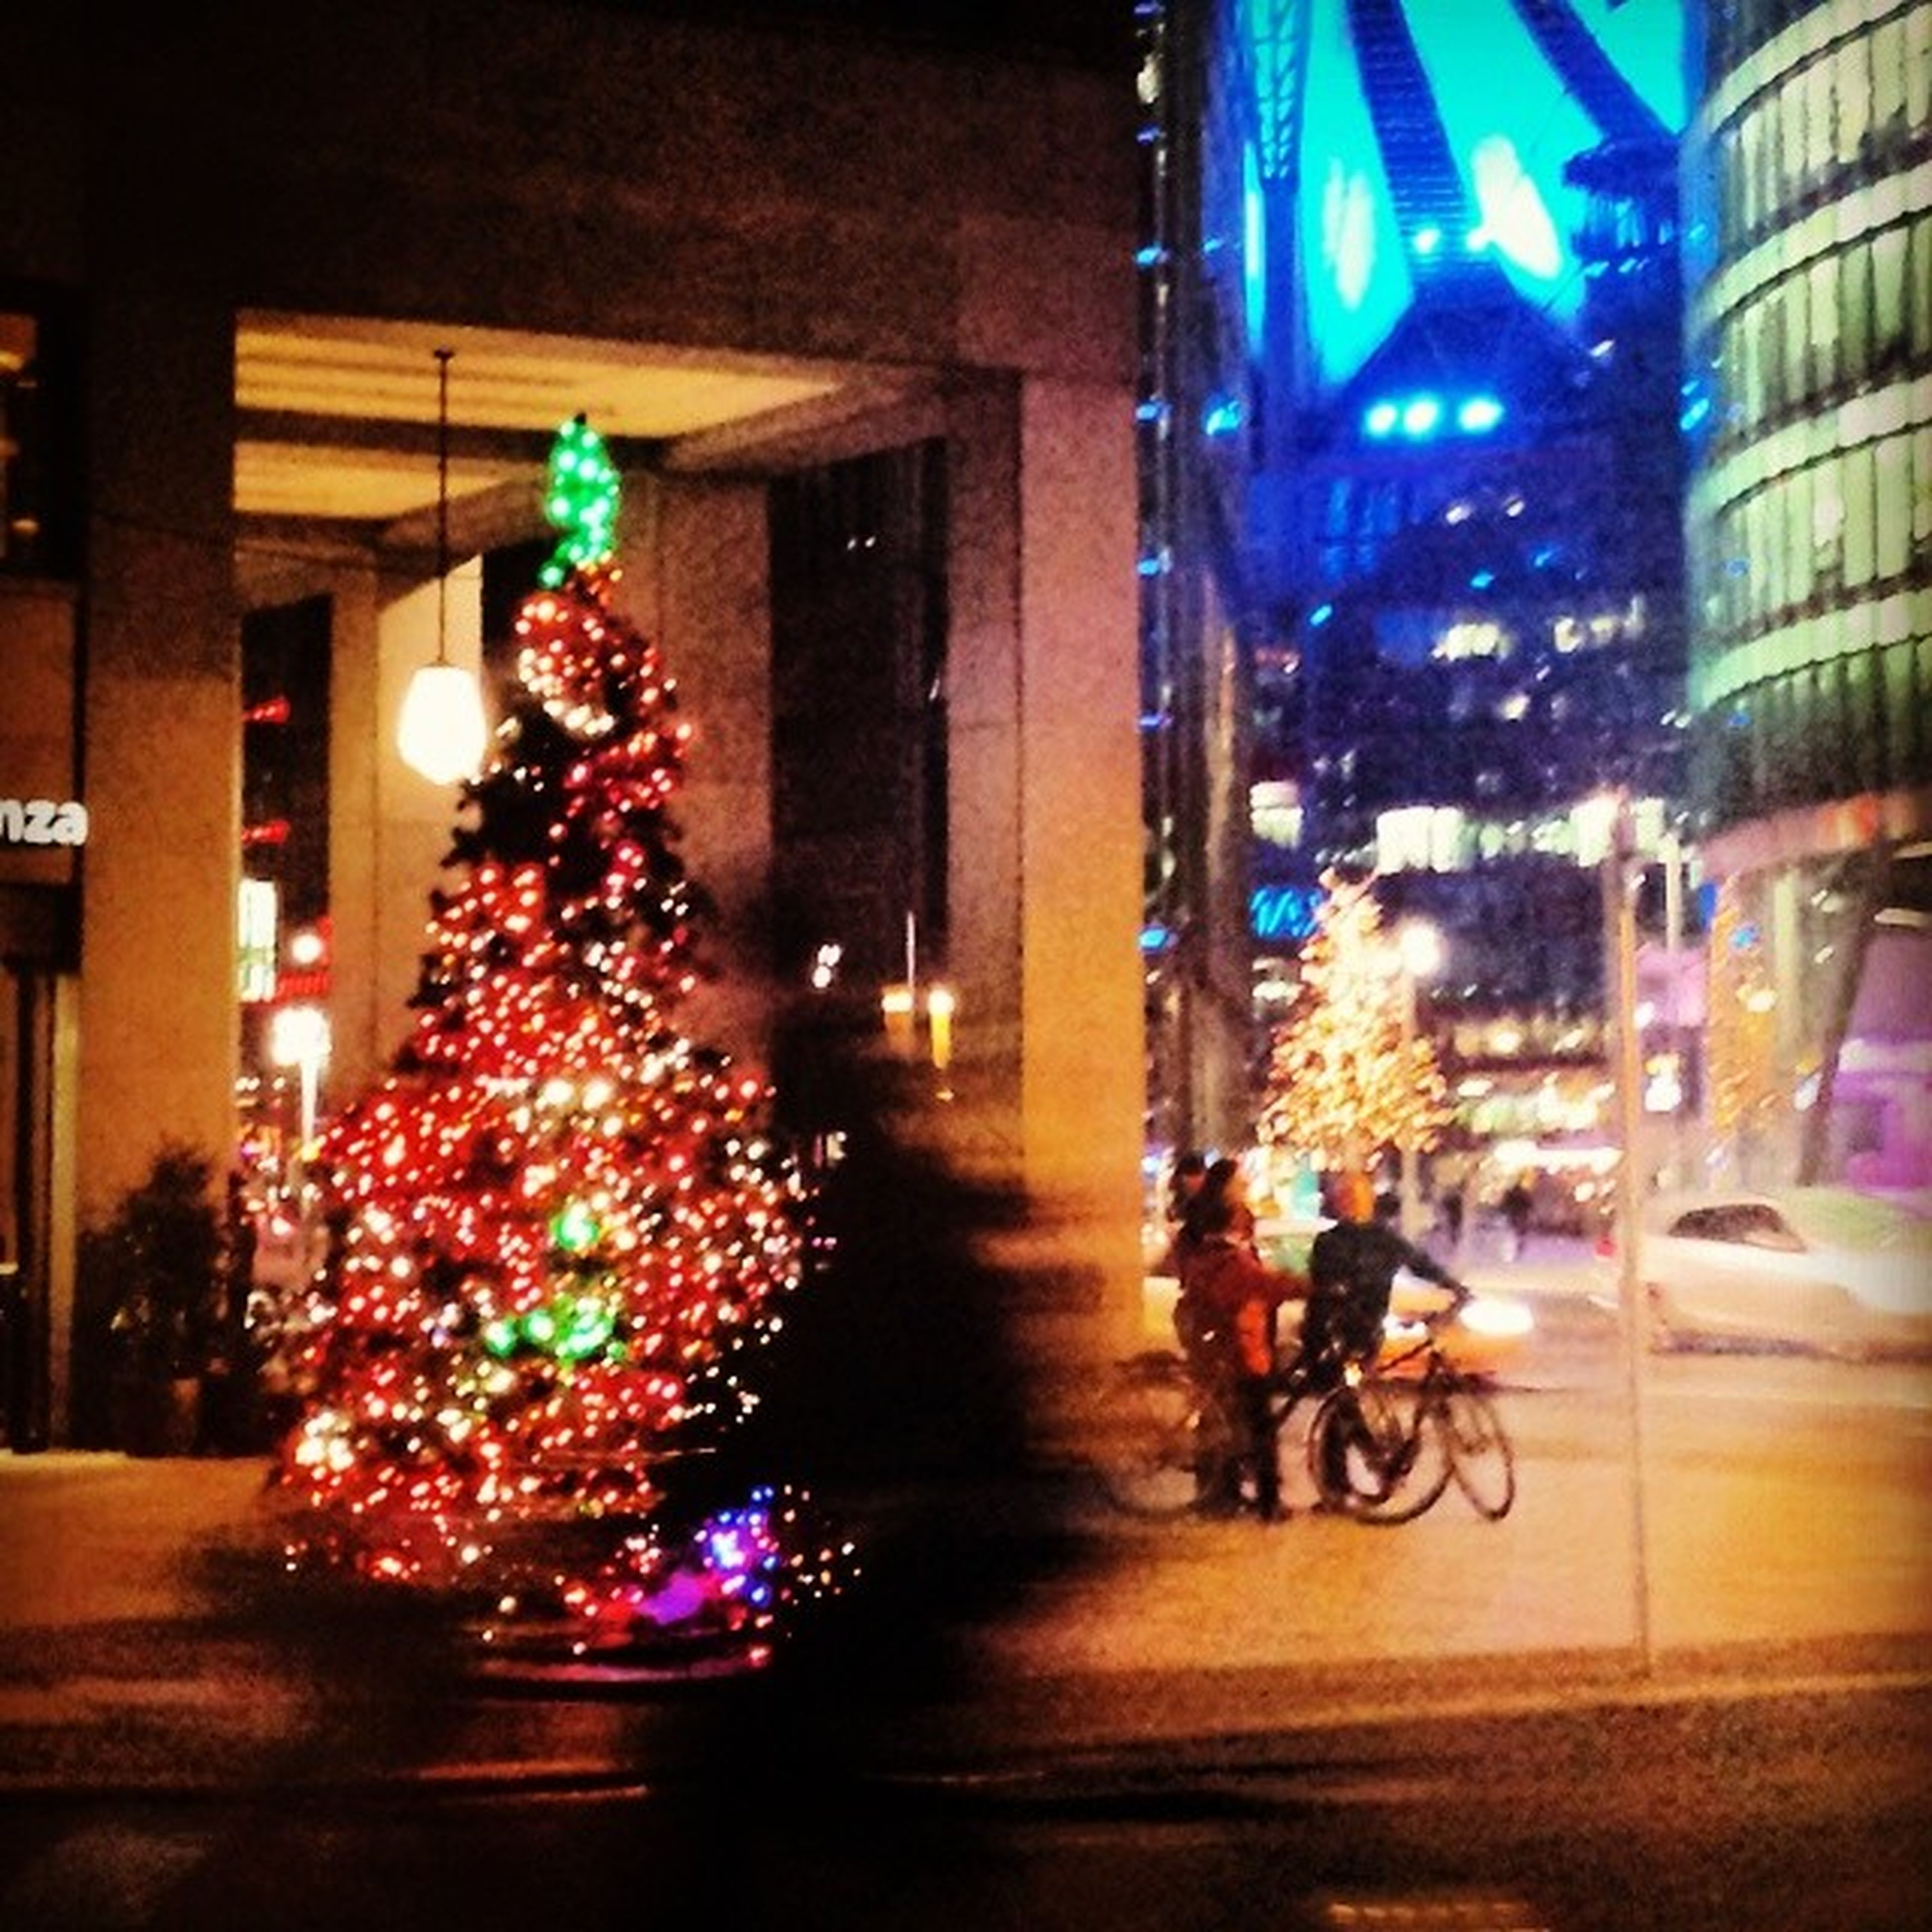 illuminated, night, decoration, christmas, architecture, built structure, building exterior, christmas tree, christmas decoration, celebration, city, lighting equipment, christmas lights, street, multi colored, incidental people, city life, celebration event, light - natural phenomenon, tradition